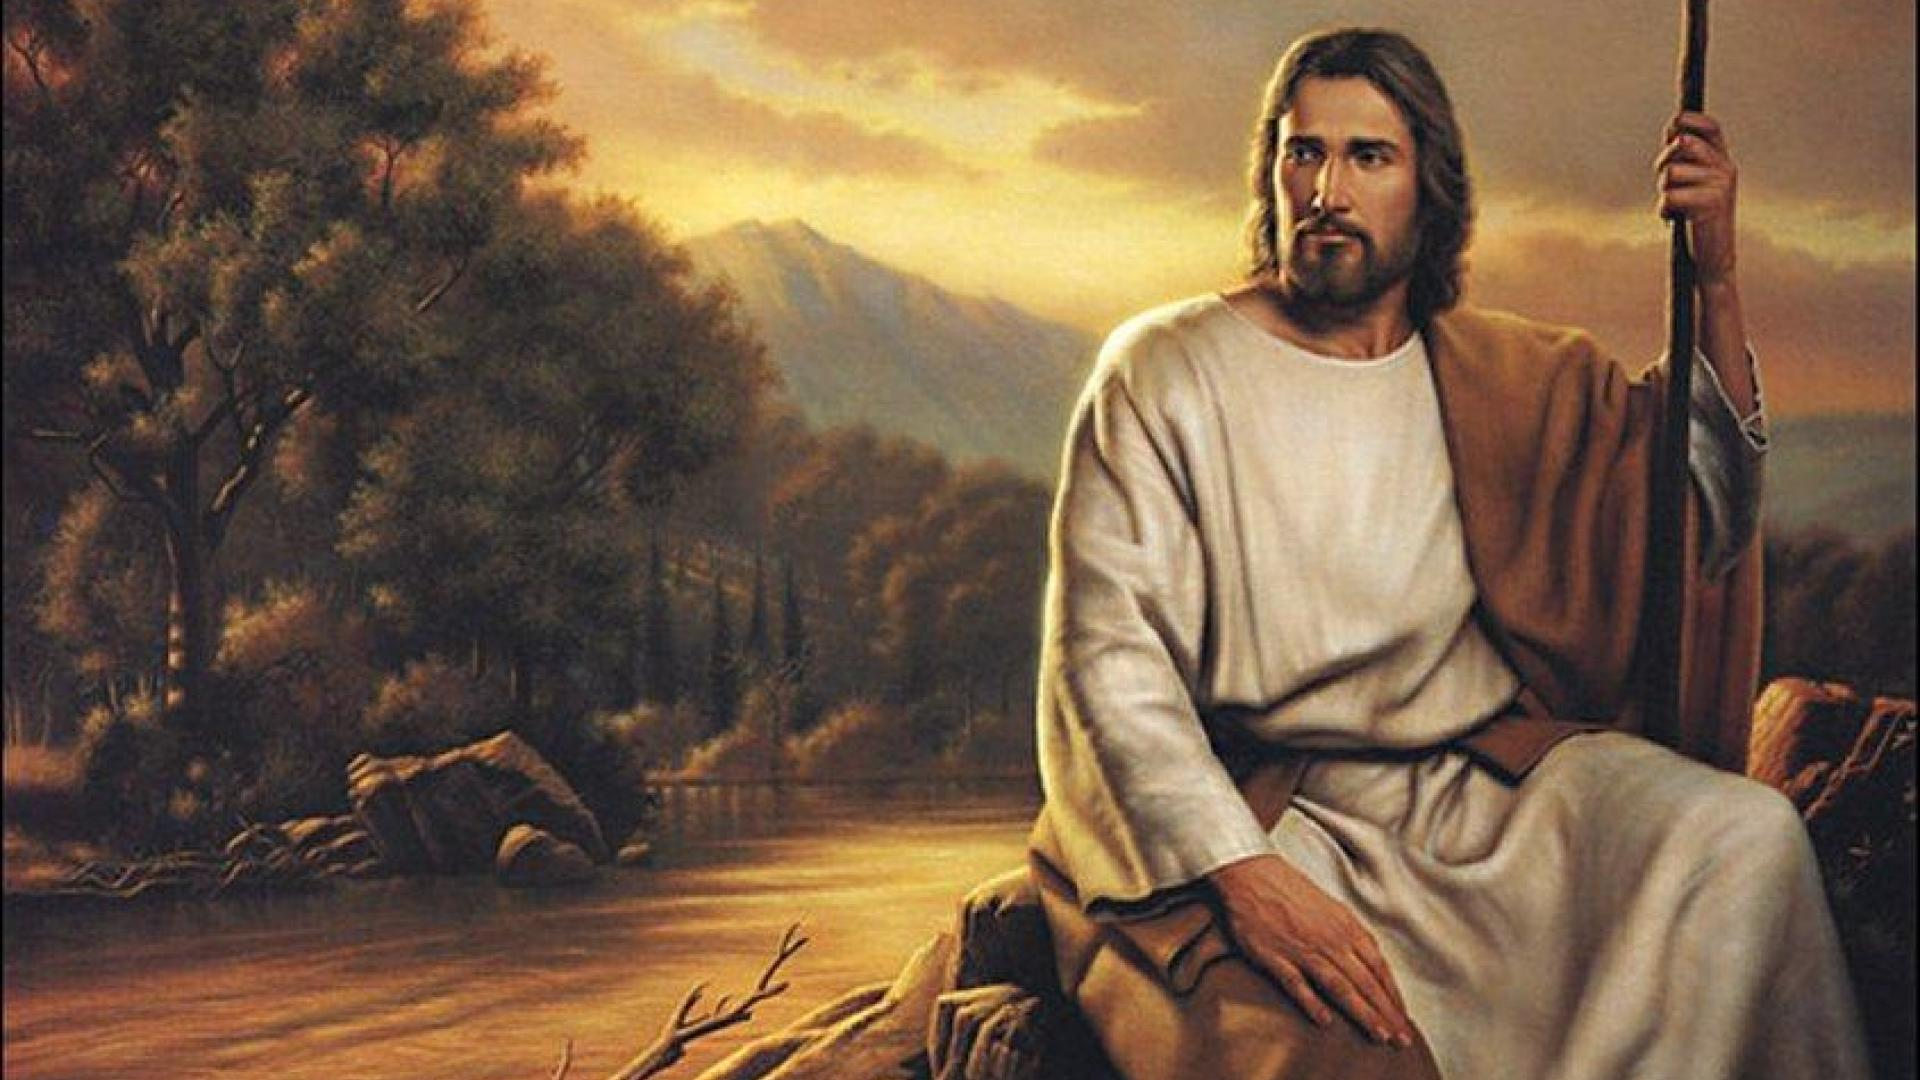 Jesus Wallpapers Images HD ruler